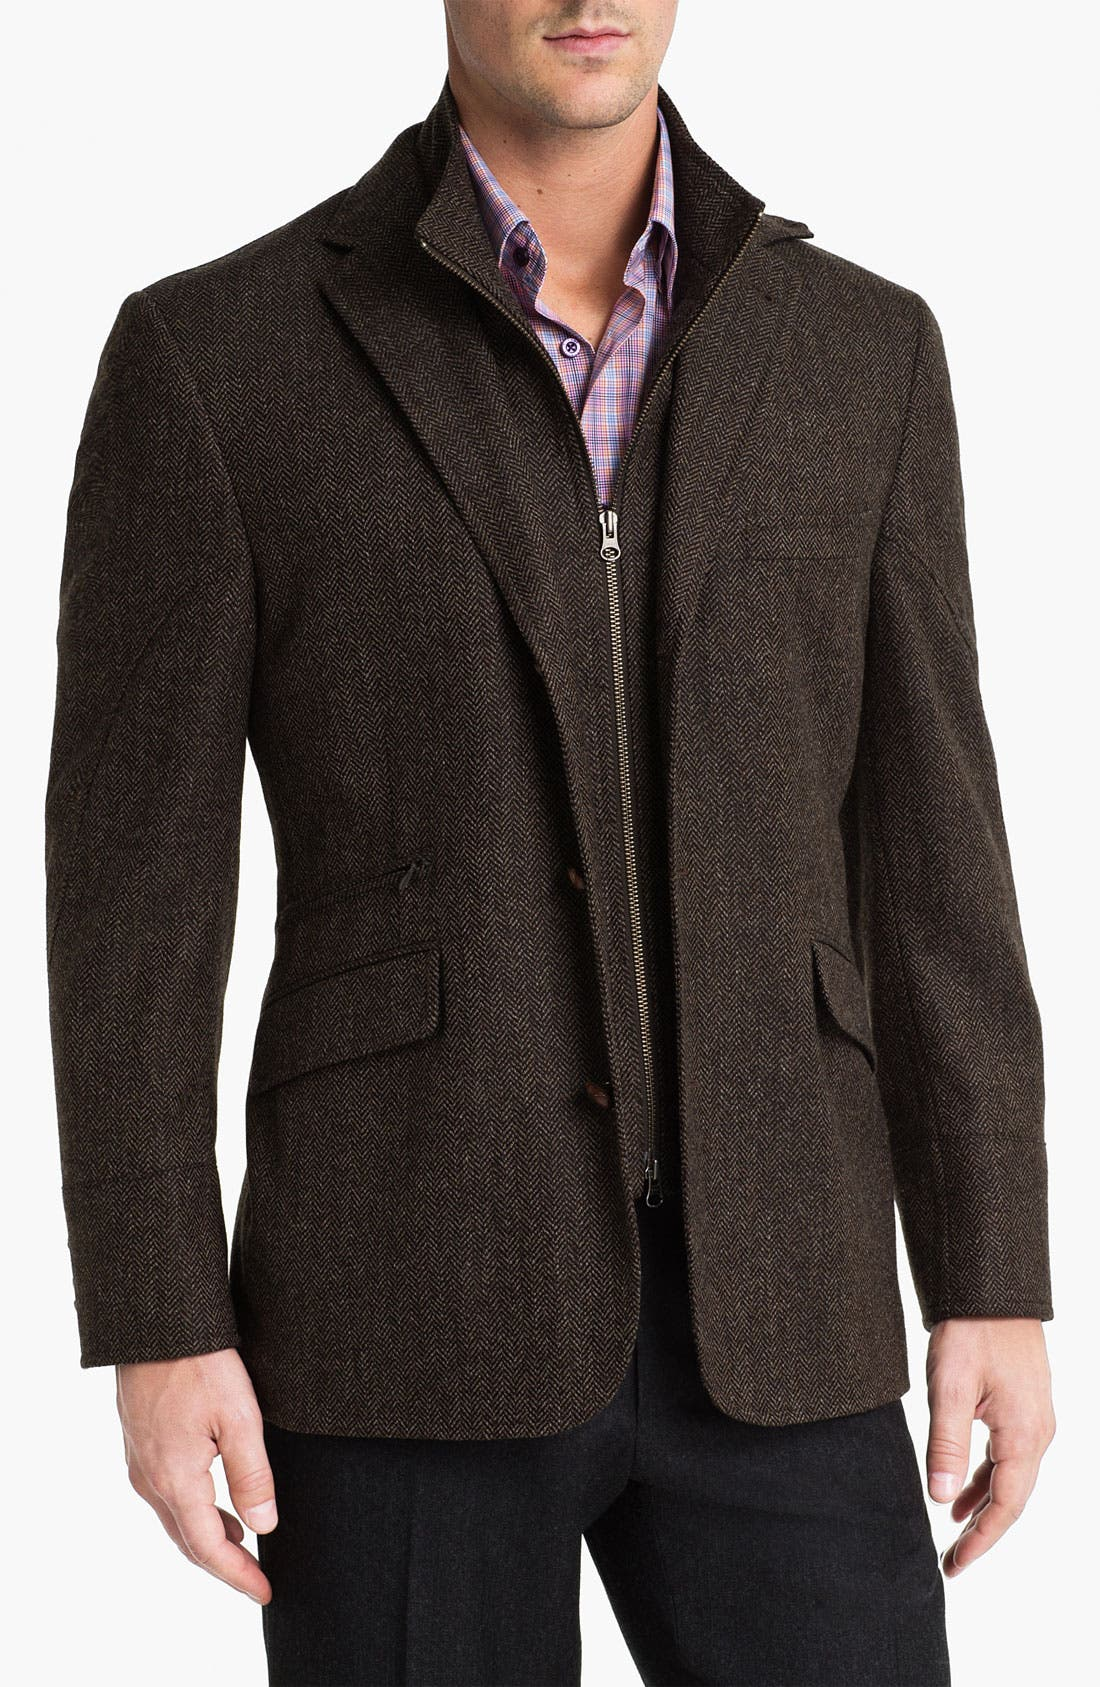 Main Image - Kroon 'Ritchie' Wool & Cashmere Sportcoat